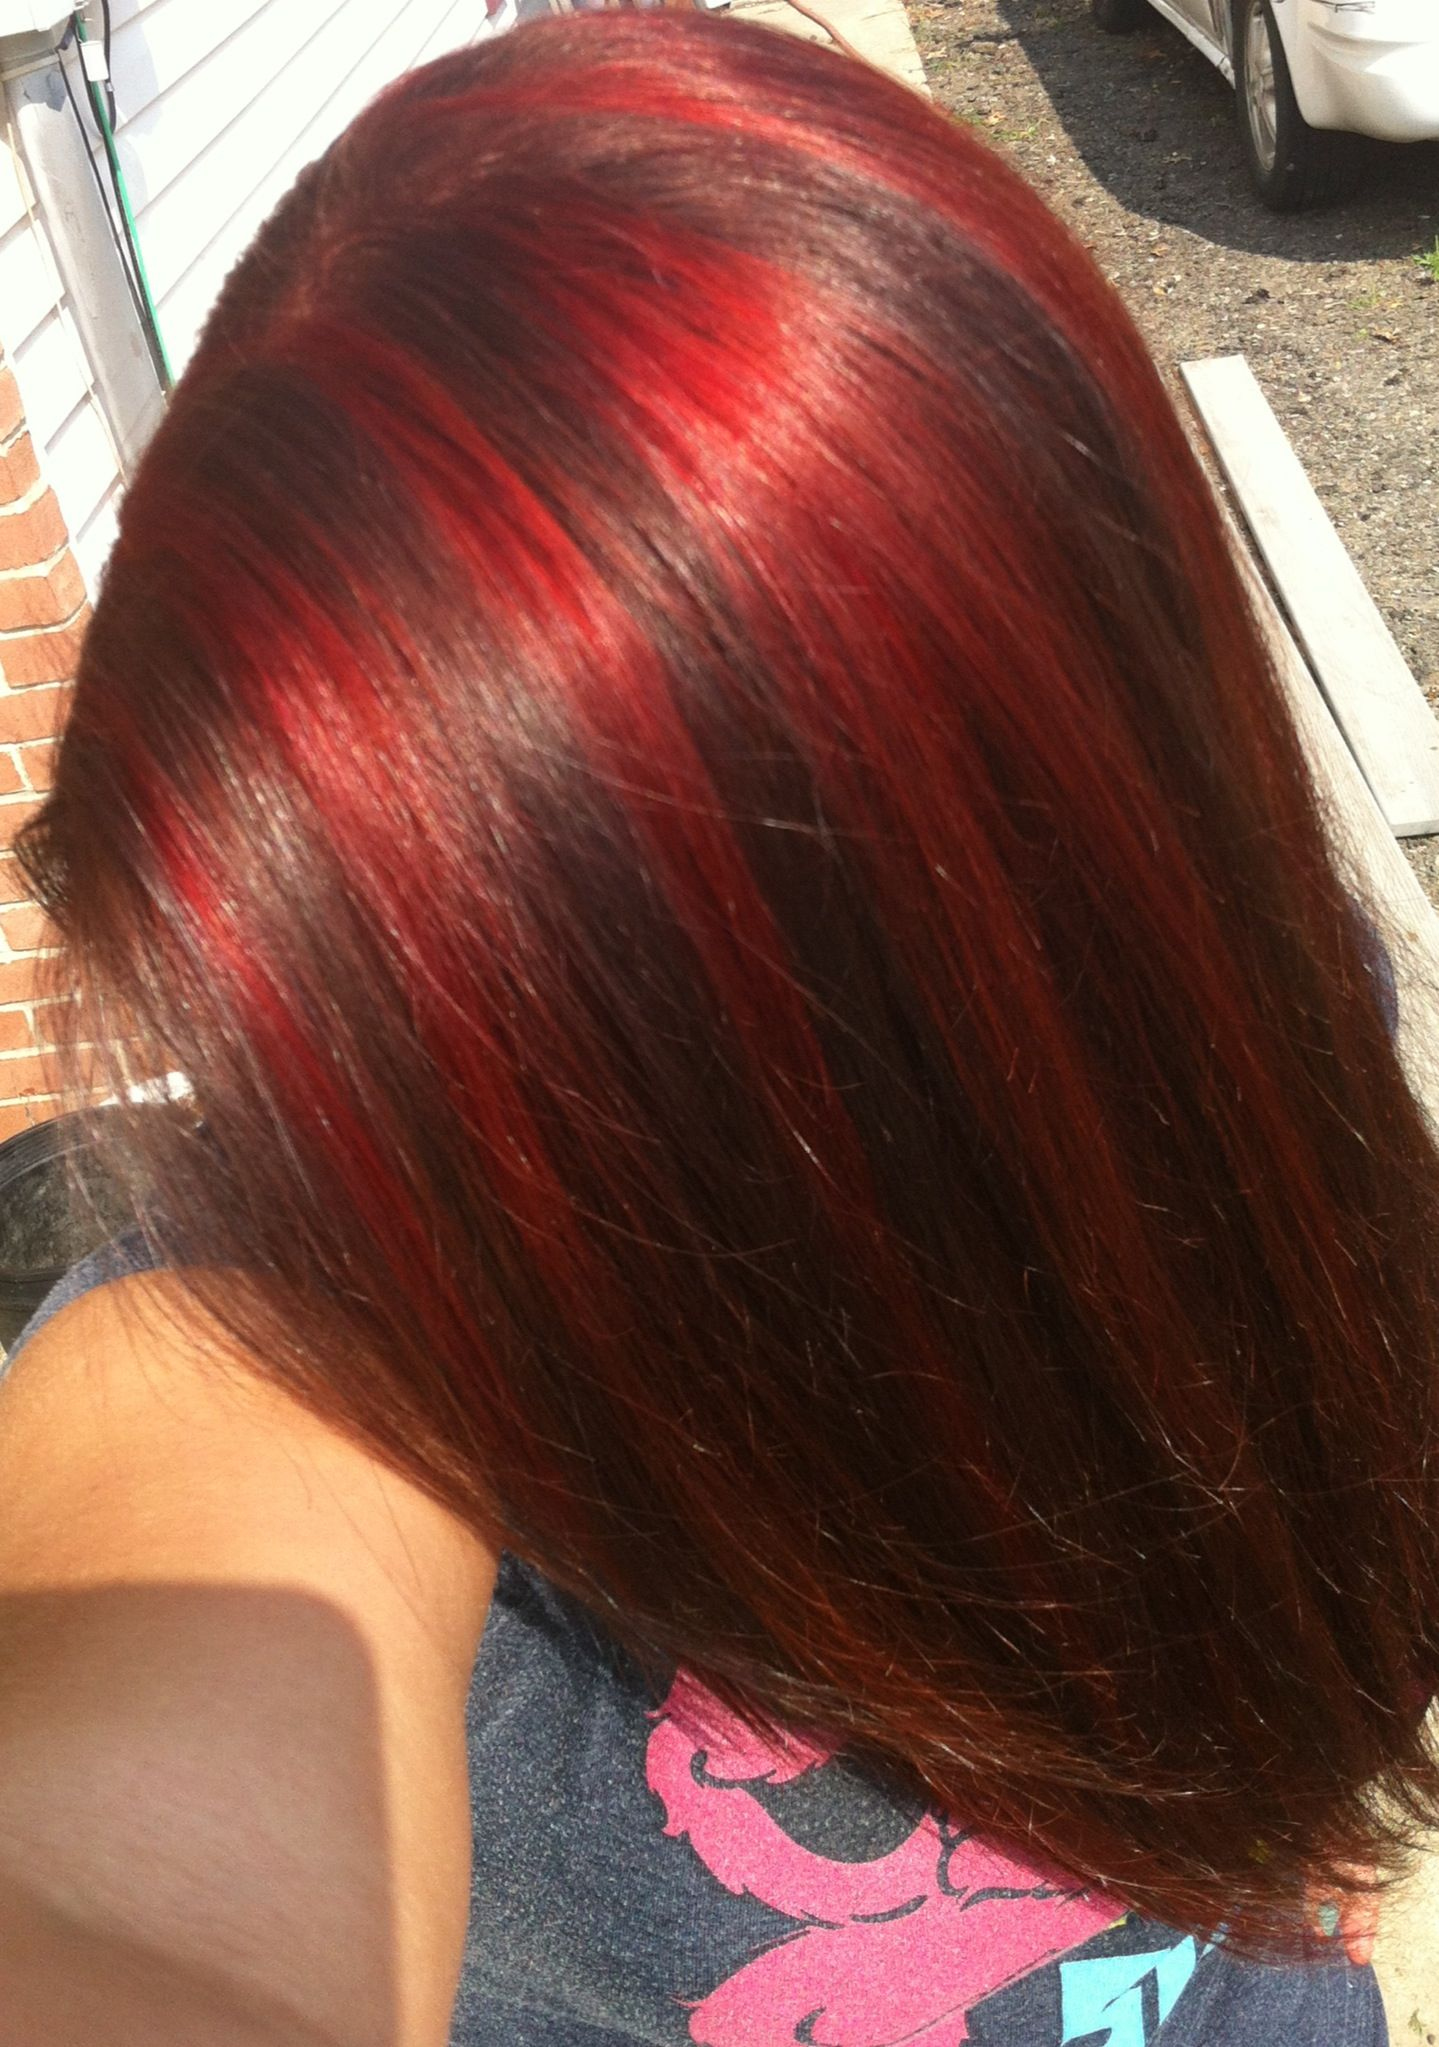 Pin By Brooke Garretson On Hair And Makeup Red Highlights In Brown Hair Hair Highlights Red Brown Hair